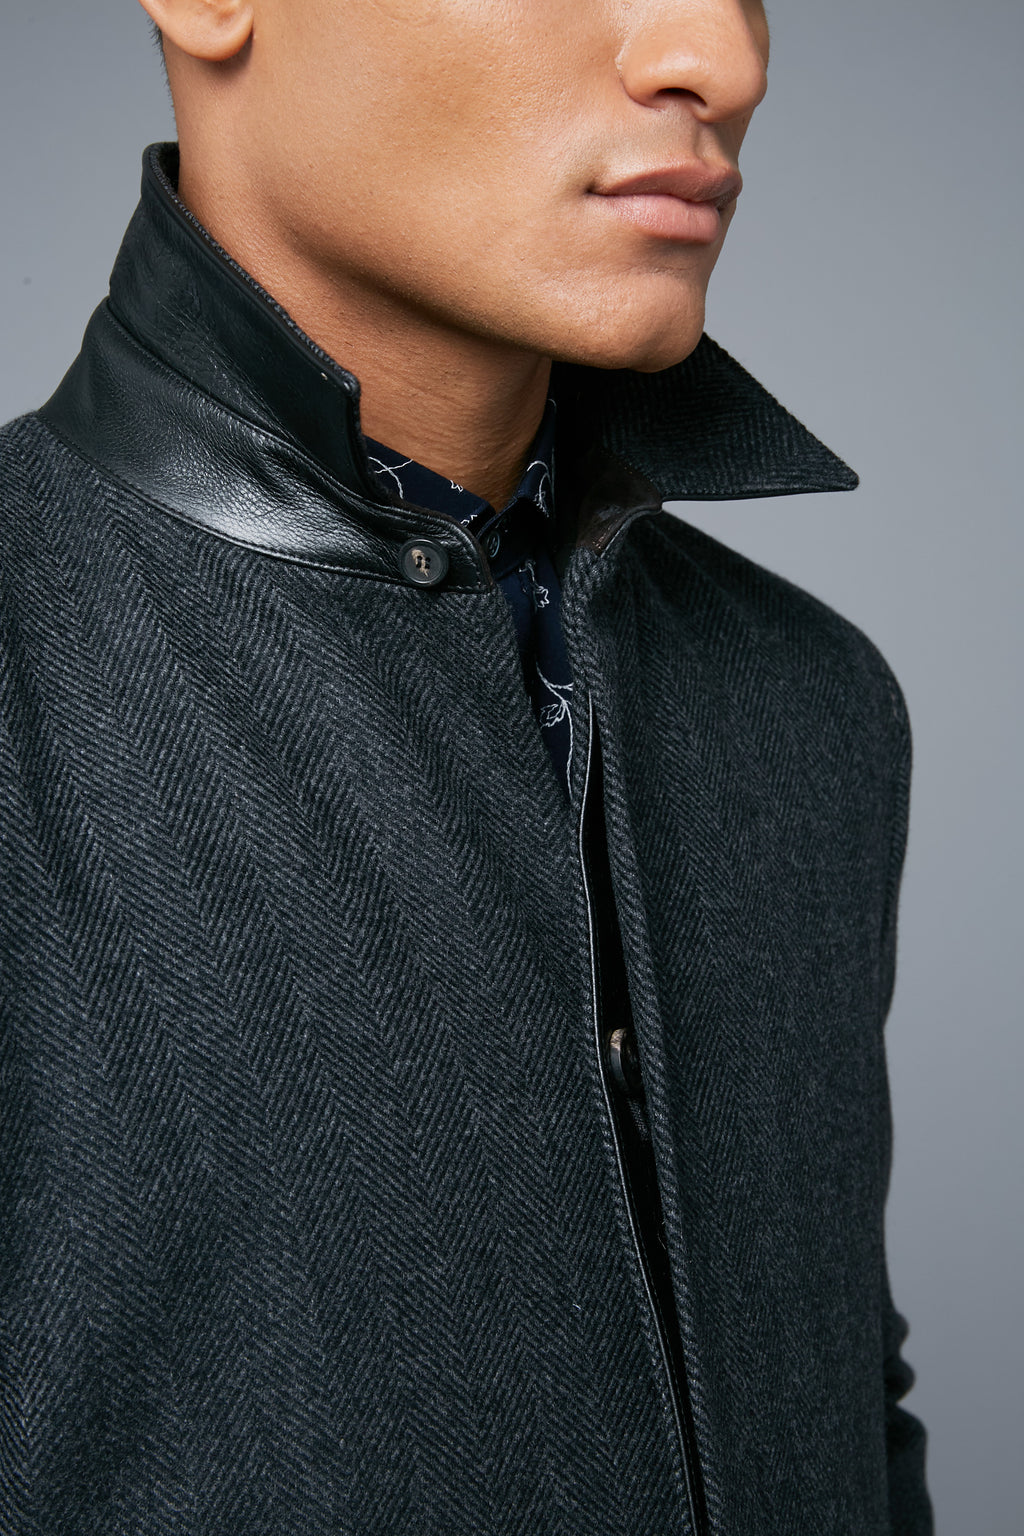 Detail View: Model Tre Boutilier wearing Téchin Coat